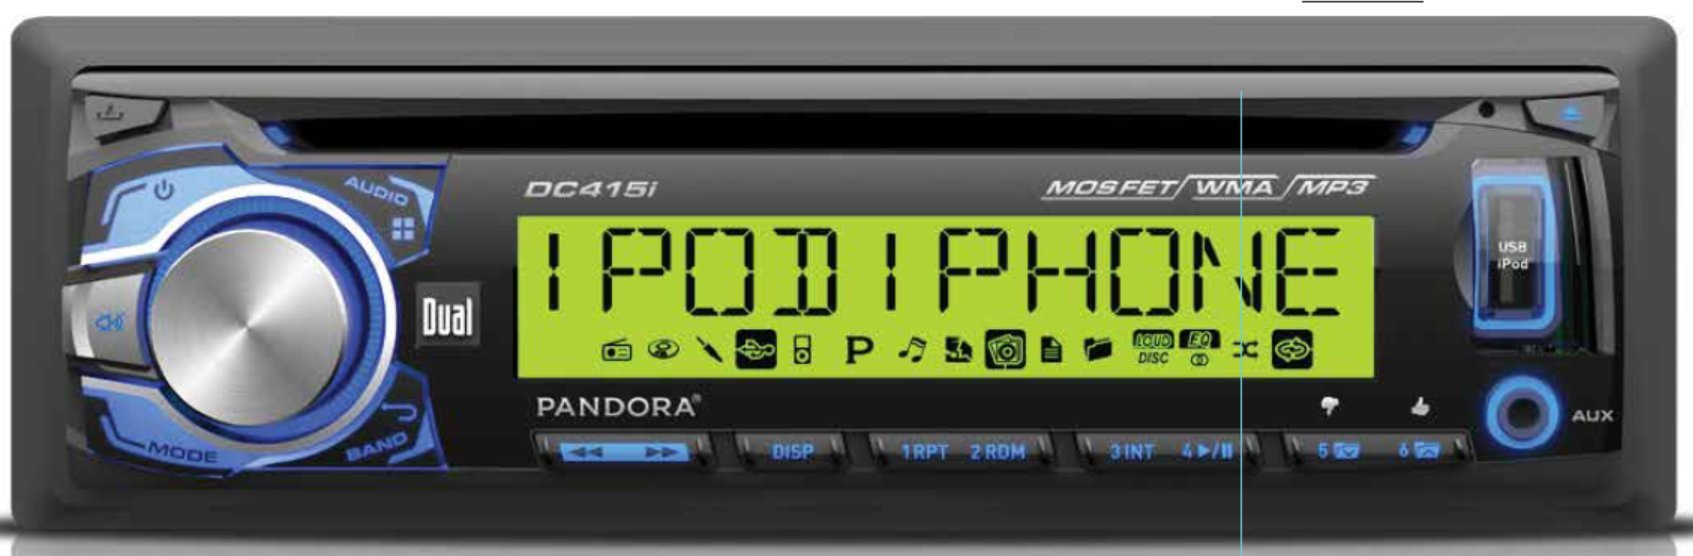 Dual Electronics DC415i Multimedia Detachable 3.7 inch 10 Character LCD Single DIN MOSFET Car Stereo with Built-In CD, USB & MP3 Player by Dual Electronics